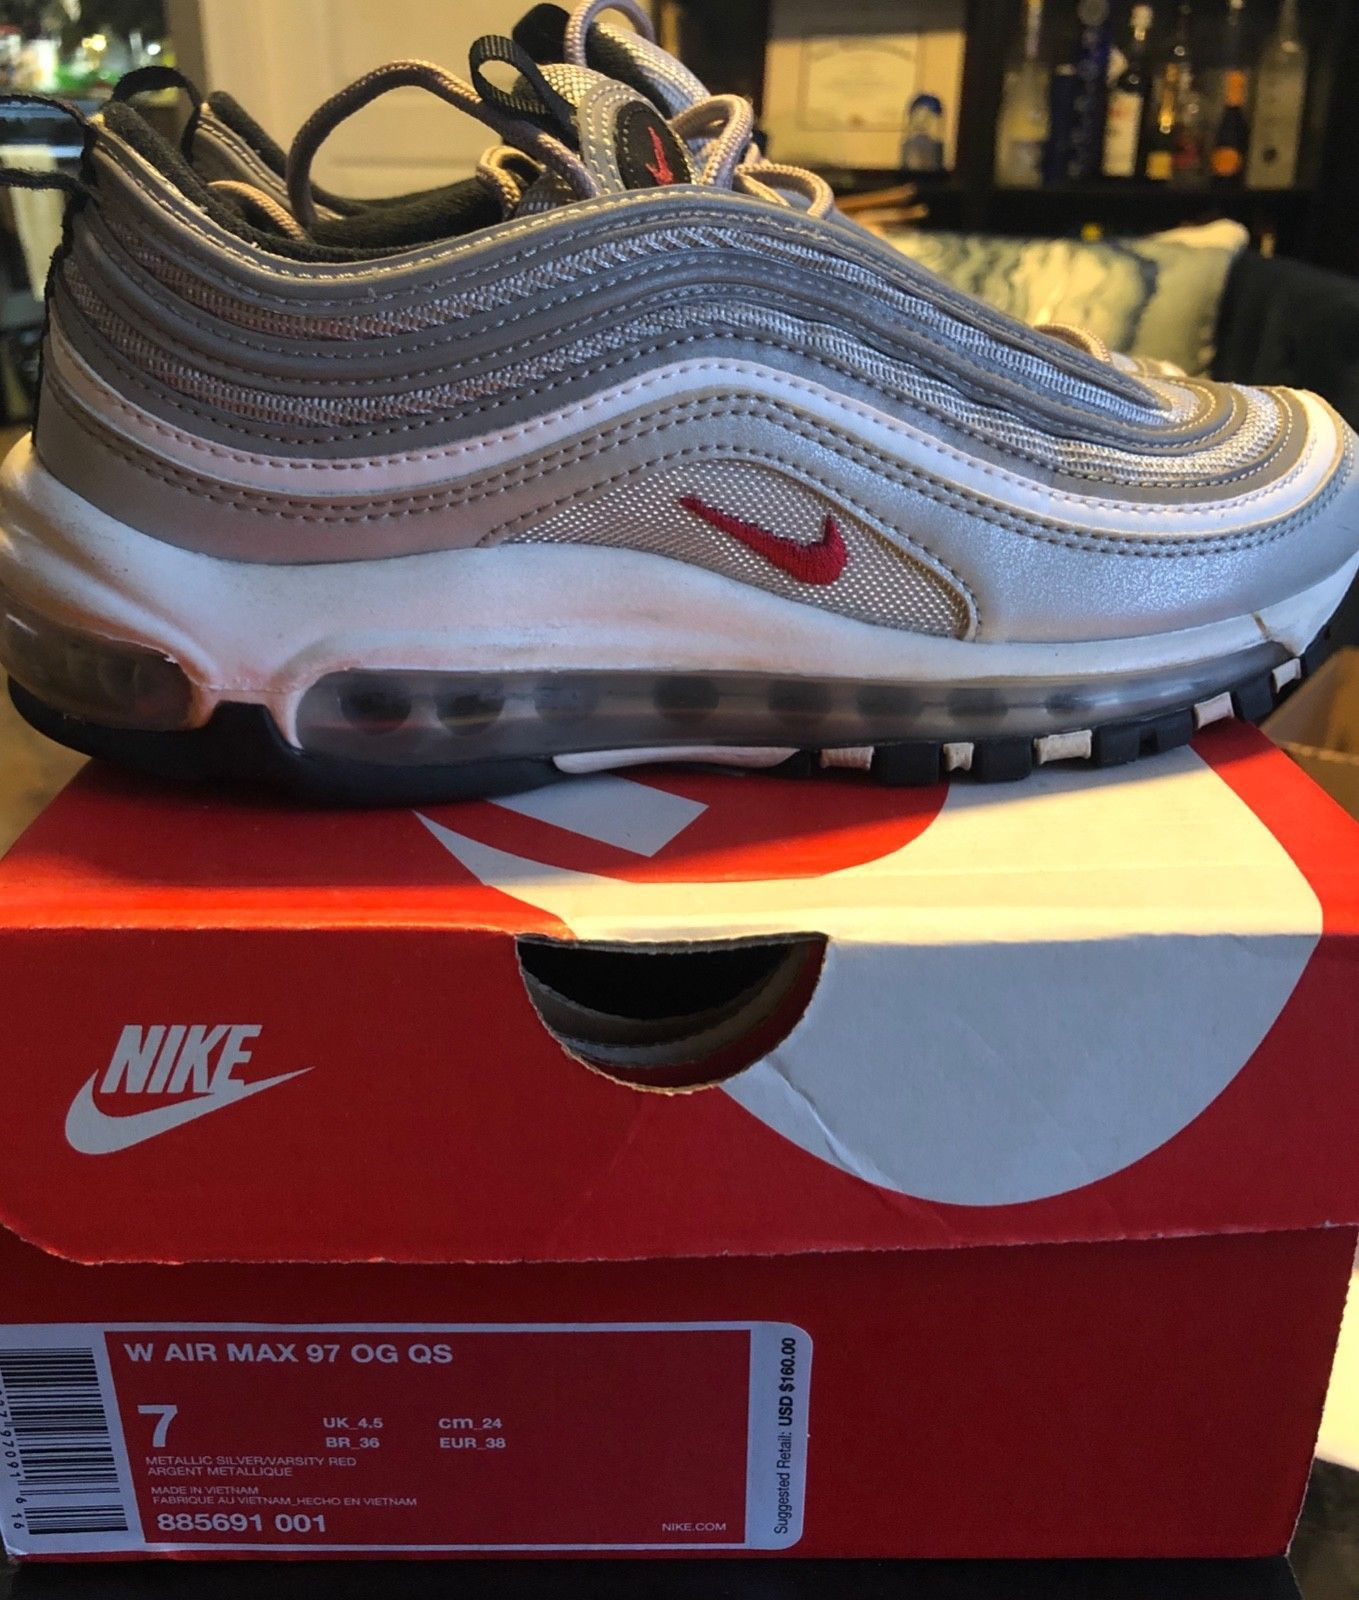 c9f5617350521 Women's Nike Air Max 97 Silver Bullet size 7 great condition ready2ship w/  box